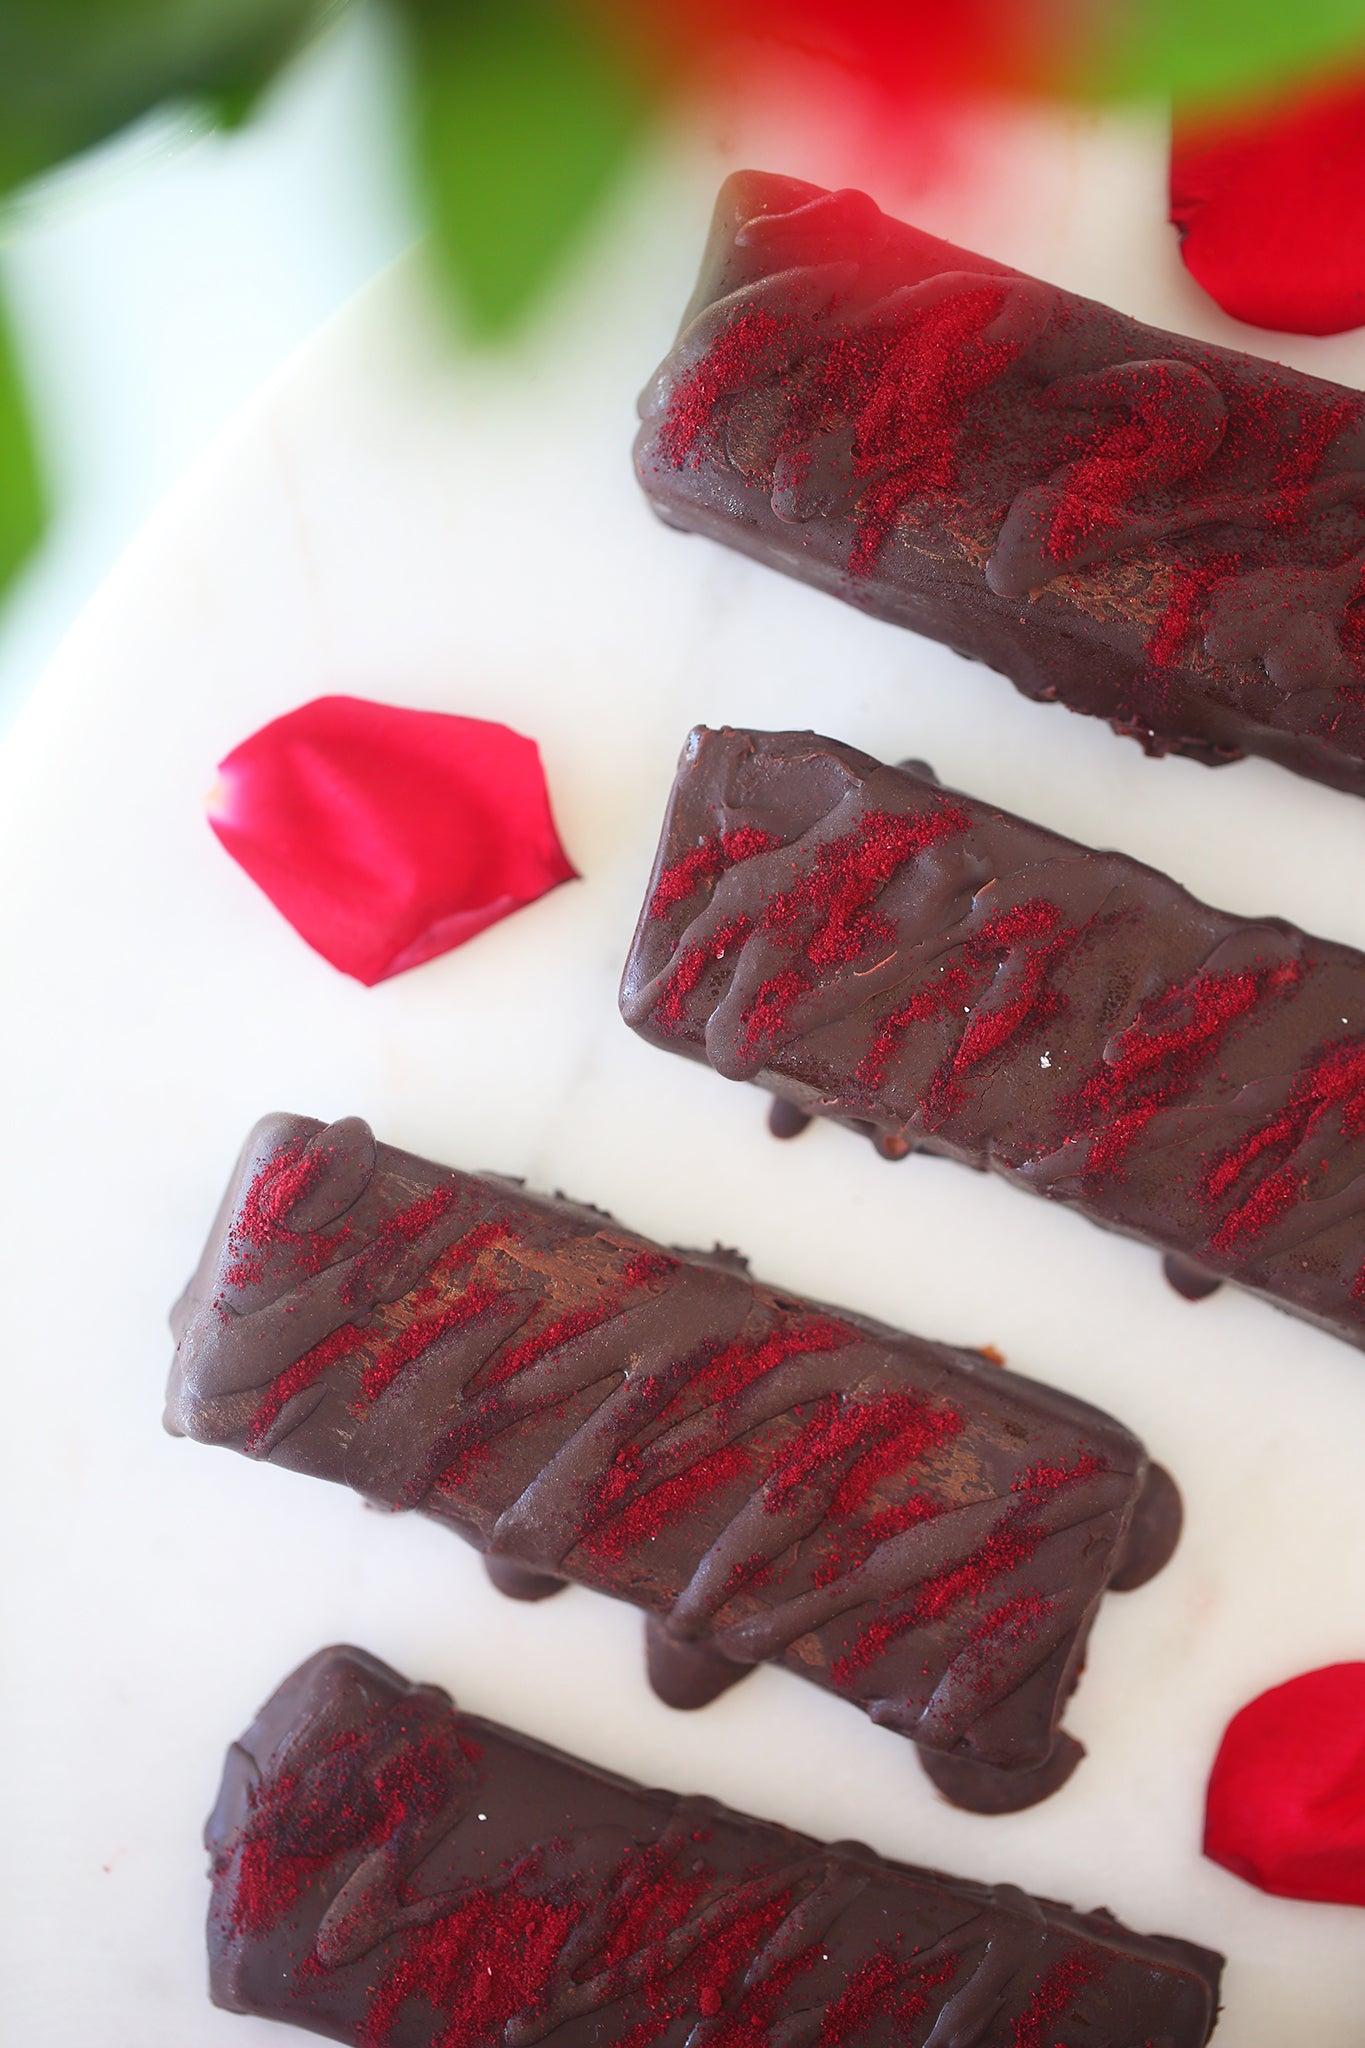 Healthy homemade TURKISH DELIGHT CHOCOLATE BARS - plant based, vegan, refined sugar free, low sugar, dairy free, gluten free, natural, beetroot